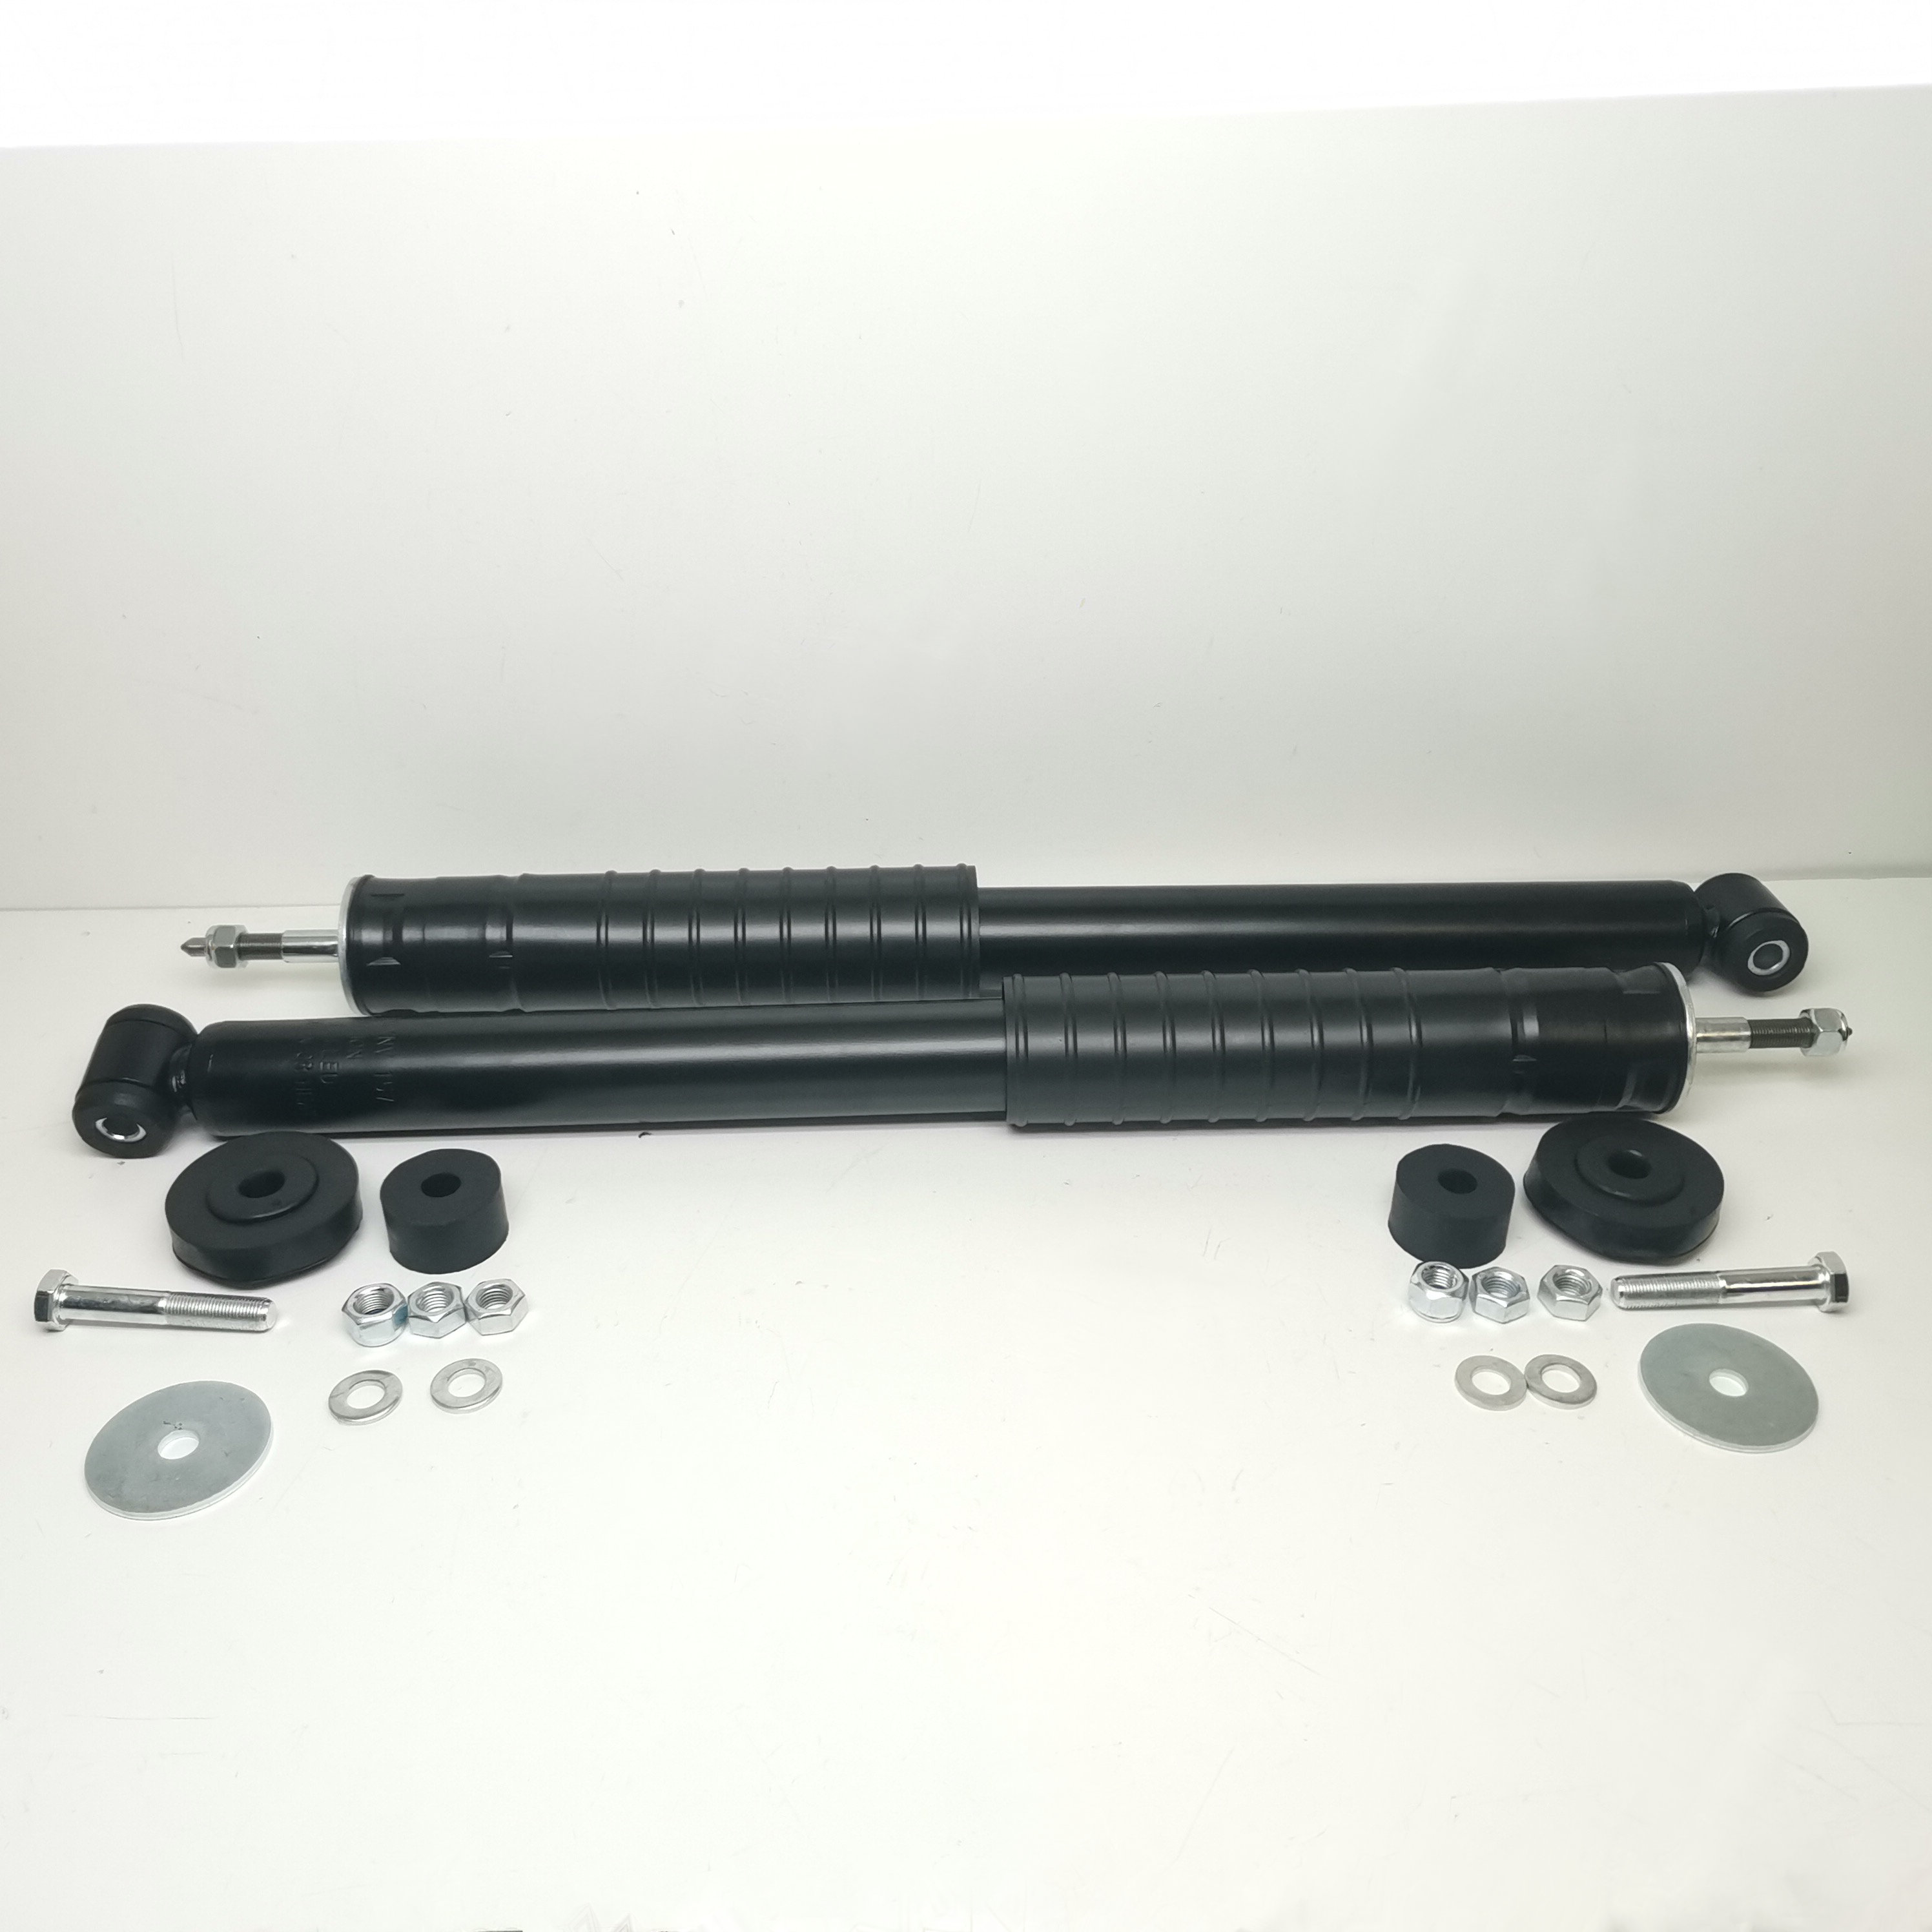 MERCEDES A - B CLASS POST SHOCK ABSORBER KIT FOR 1693260000